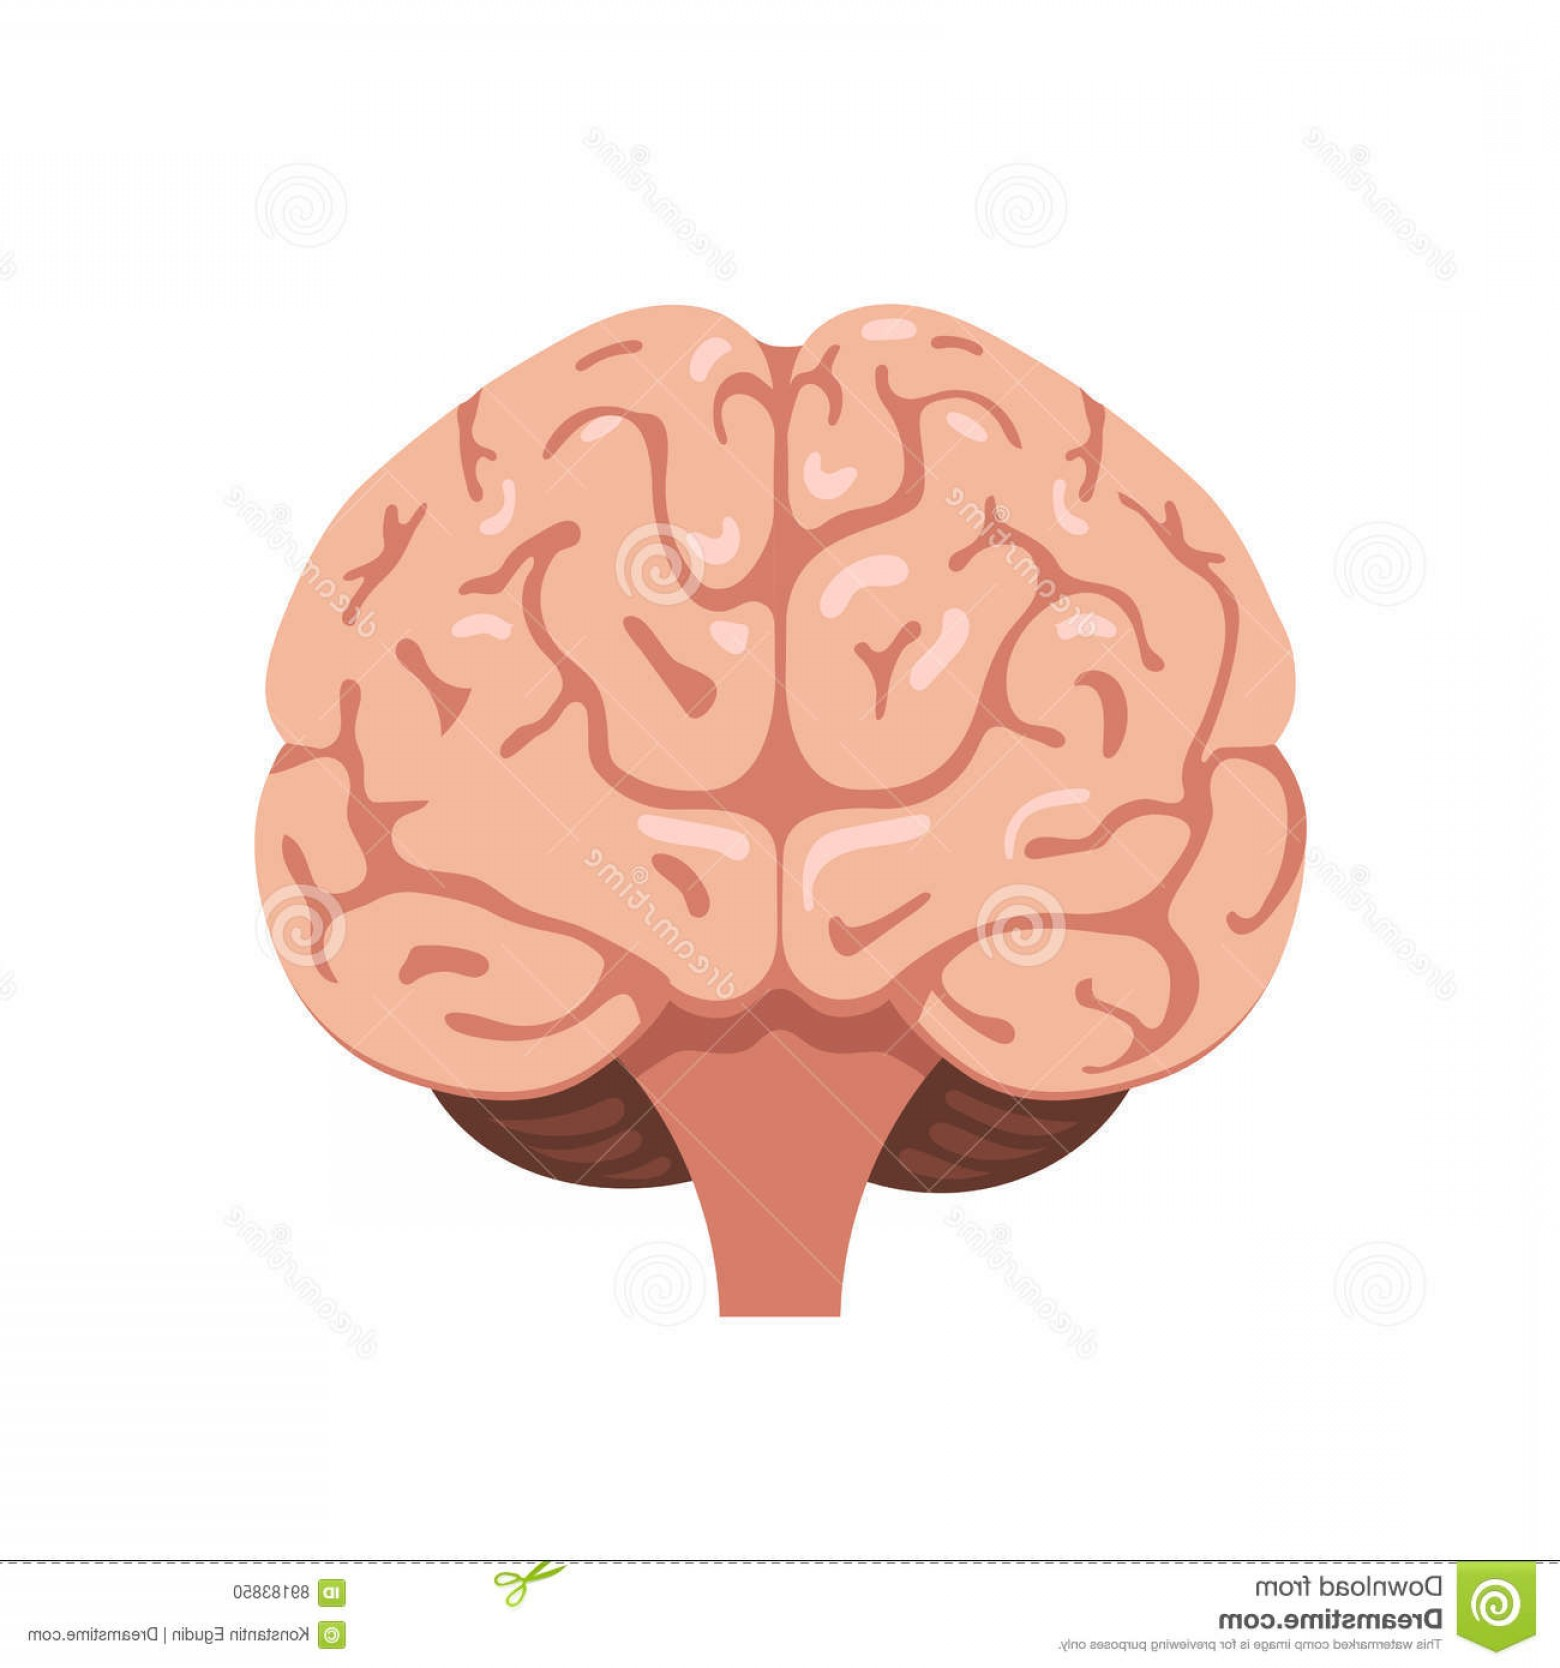 Brain frontal view clipart black and white graphic stock Brains Front View Icon Vector | HandandBeak graphic stock